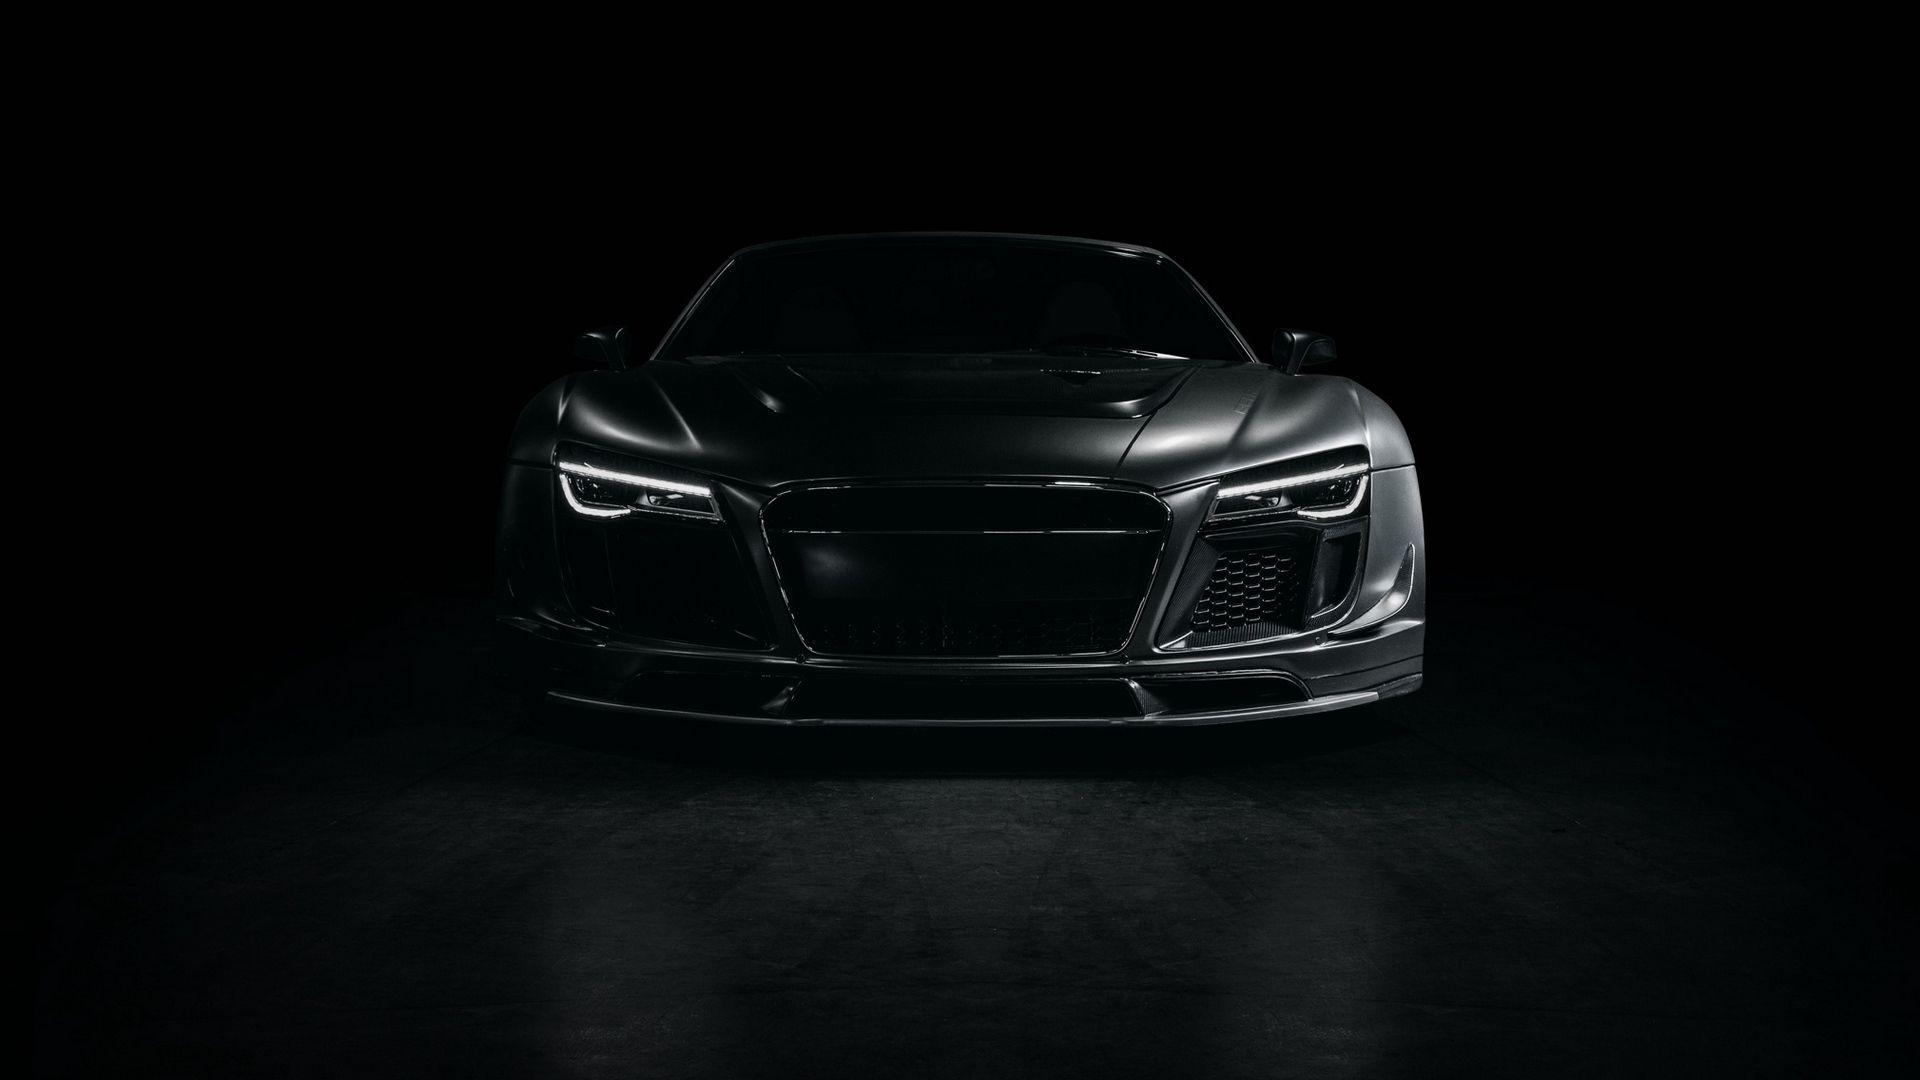 Download wallpapers 1920x1080 audi, r8, sports car, tuning, front